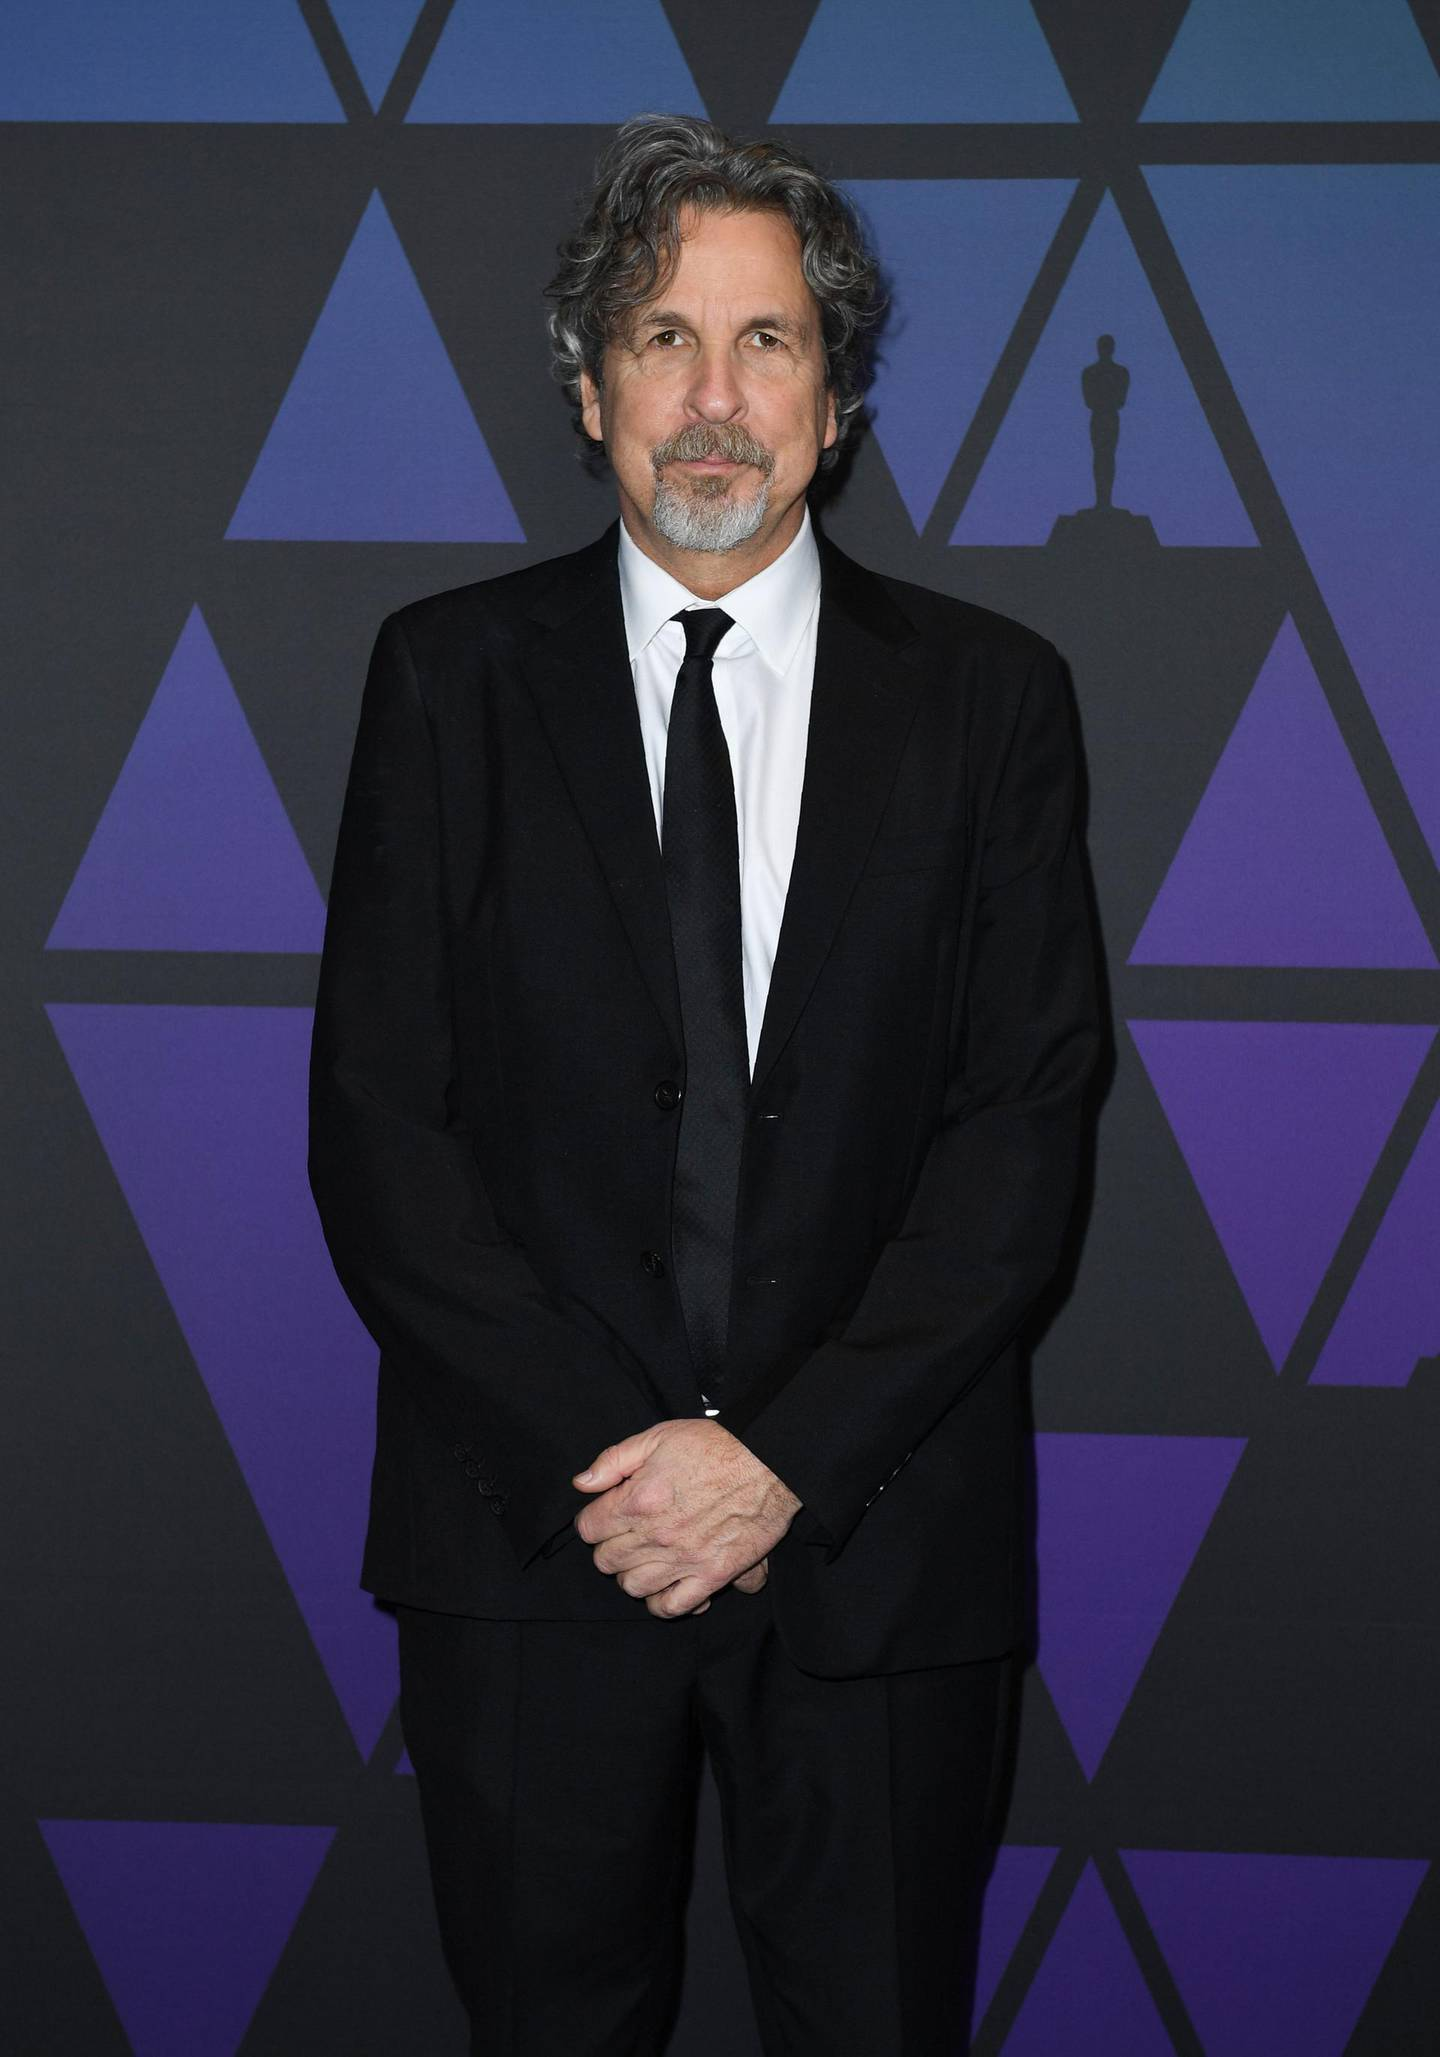 US director/screenwriter Peter Farrelly attends the 10th Annual Governors Awards gala hosted by the Academy of Motion Picture Arts and Sciences at the the Dolby Theater at Hollywood & Highland Center in Hollywood, California on November 18, 2018.   / AFP / VALERIE MACON